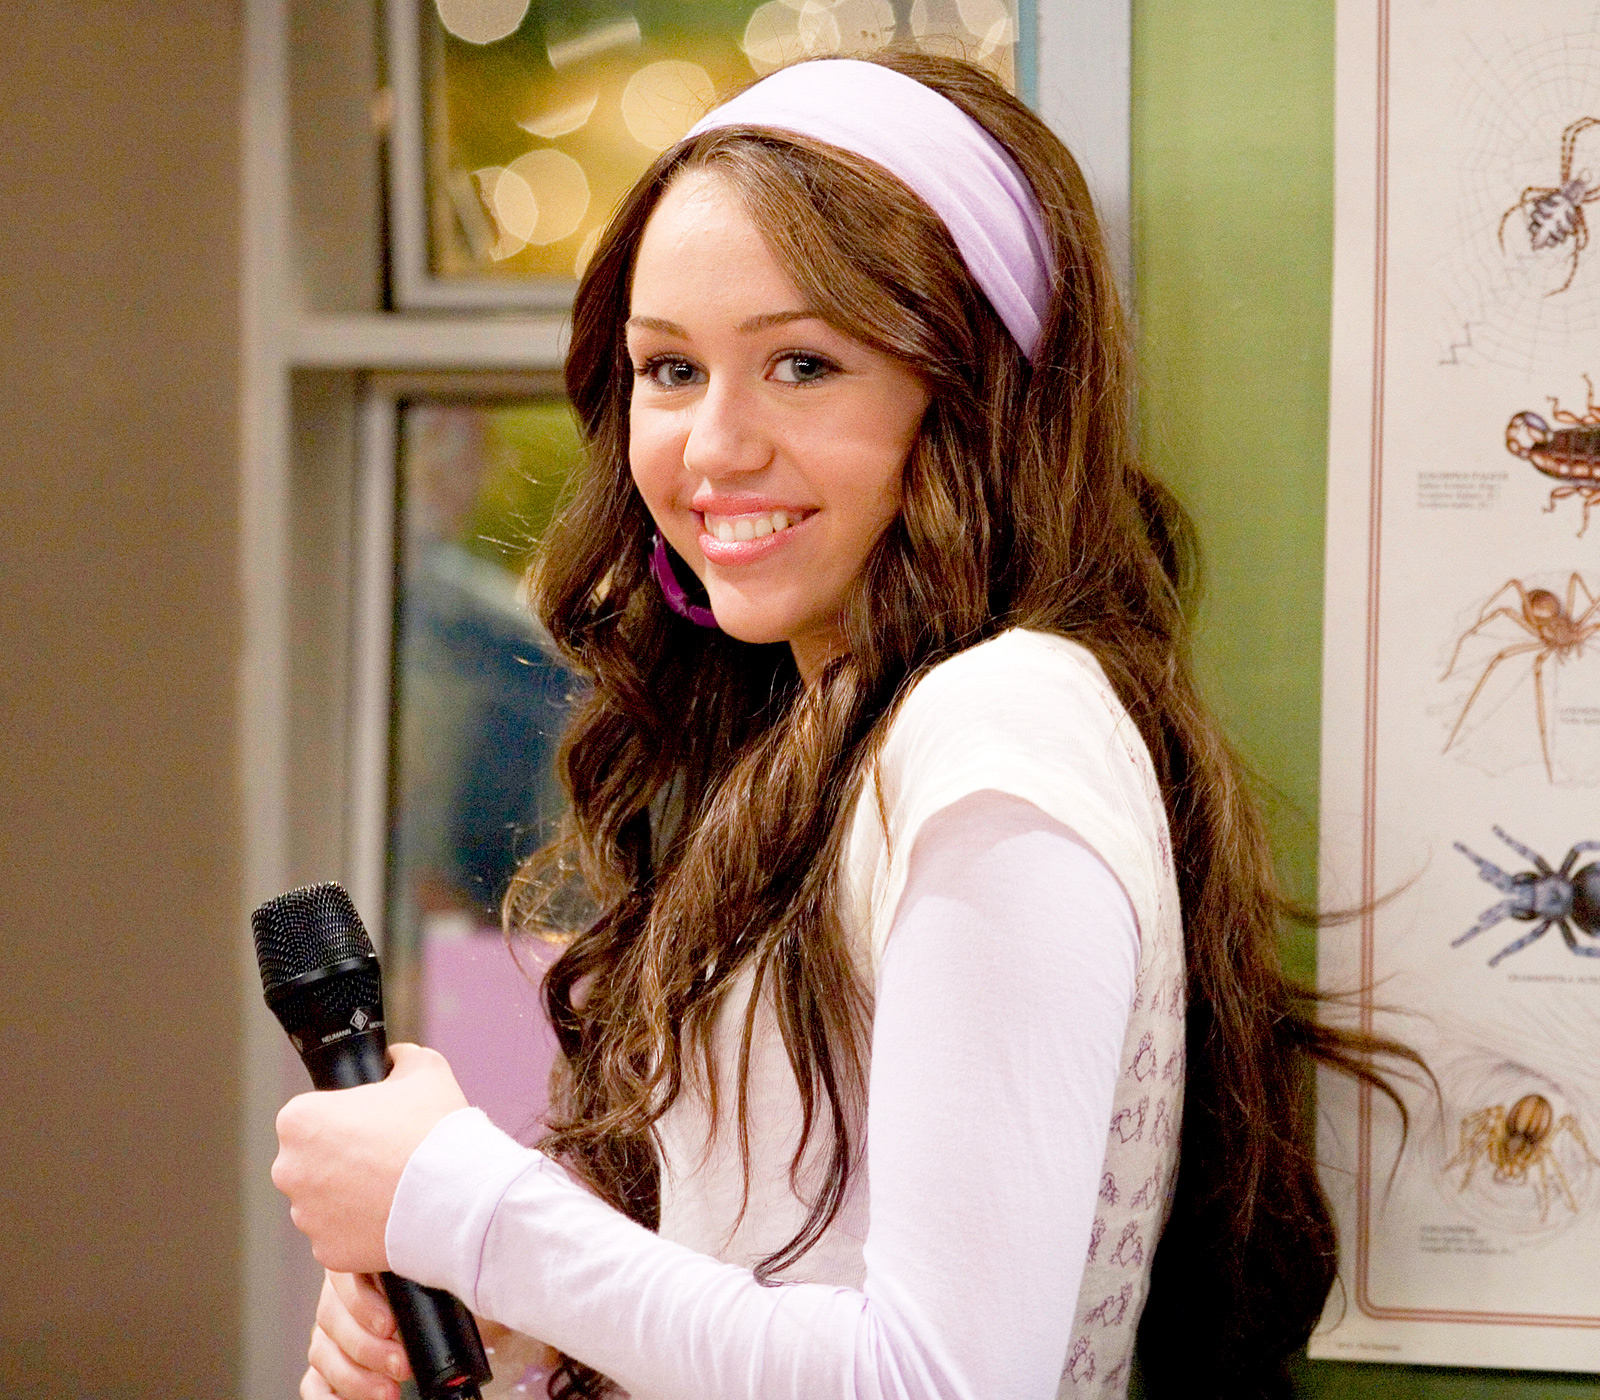 Miley Cyrus Reacts To Her Hannah Montana Audition Tape Watch